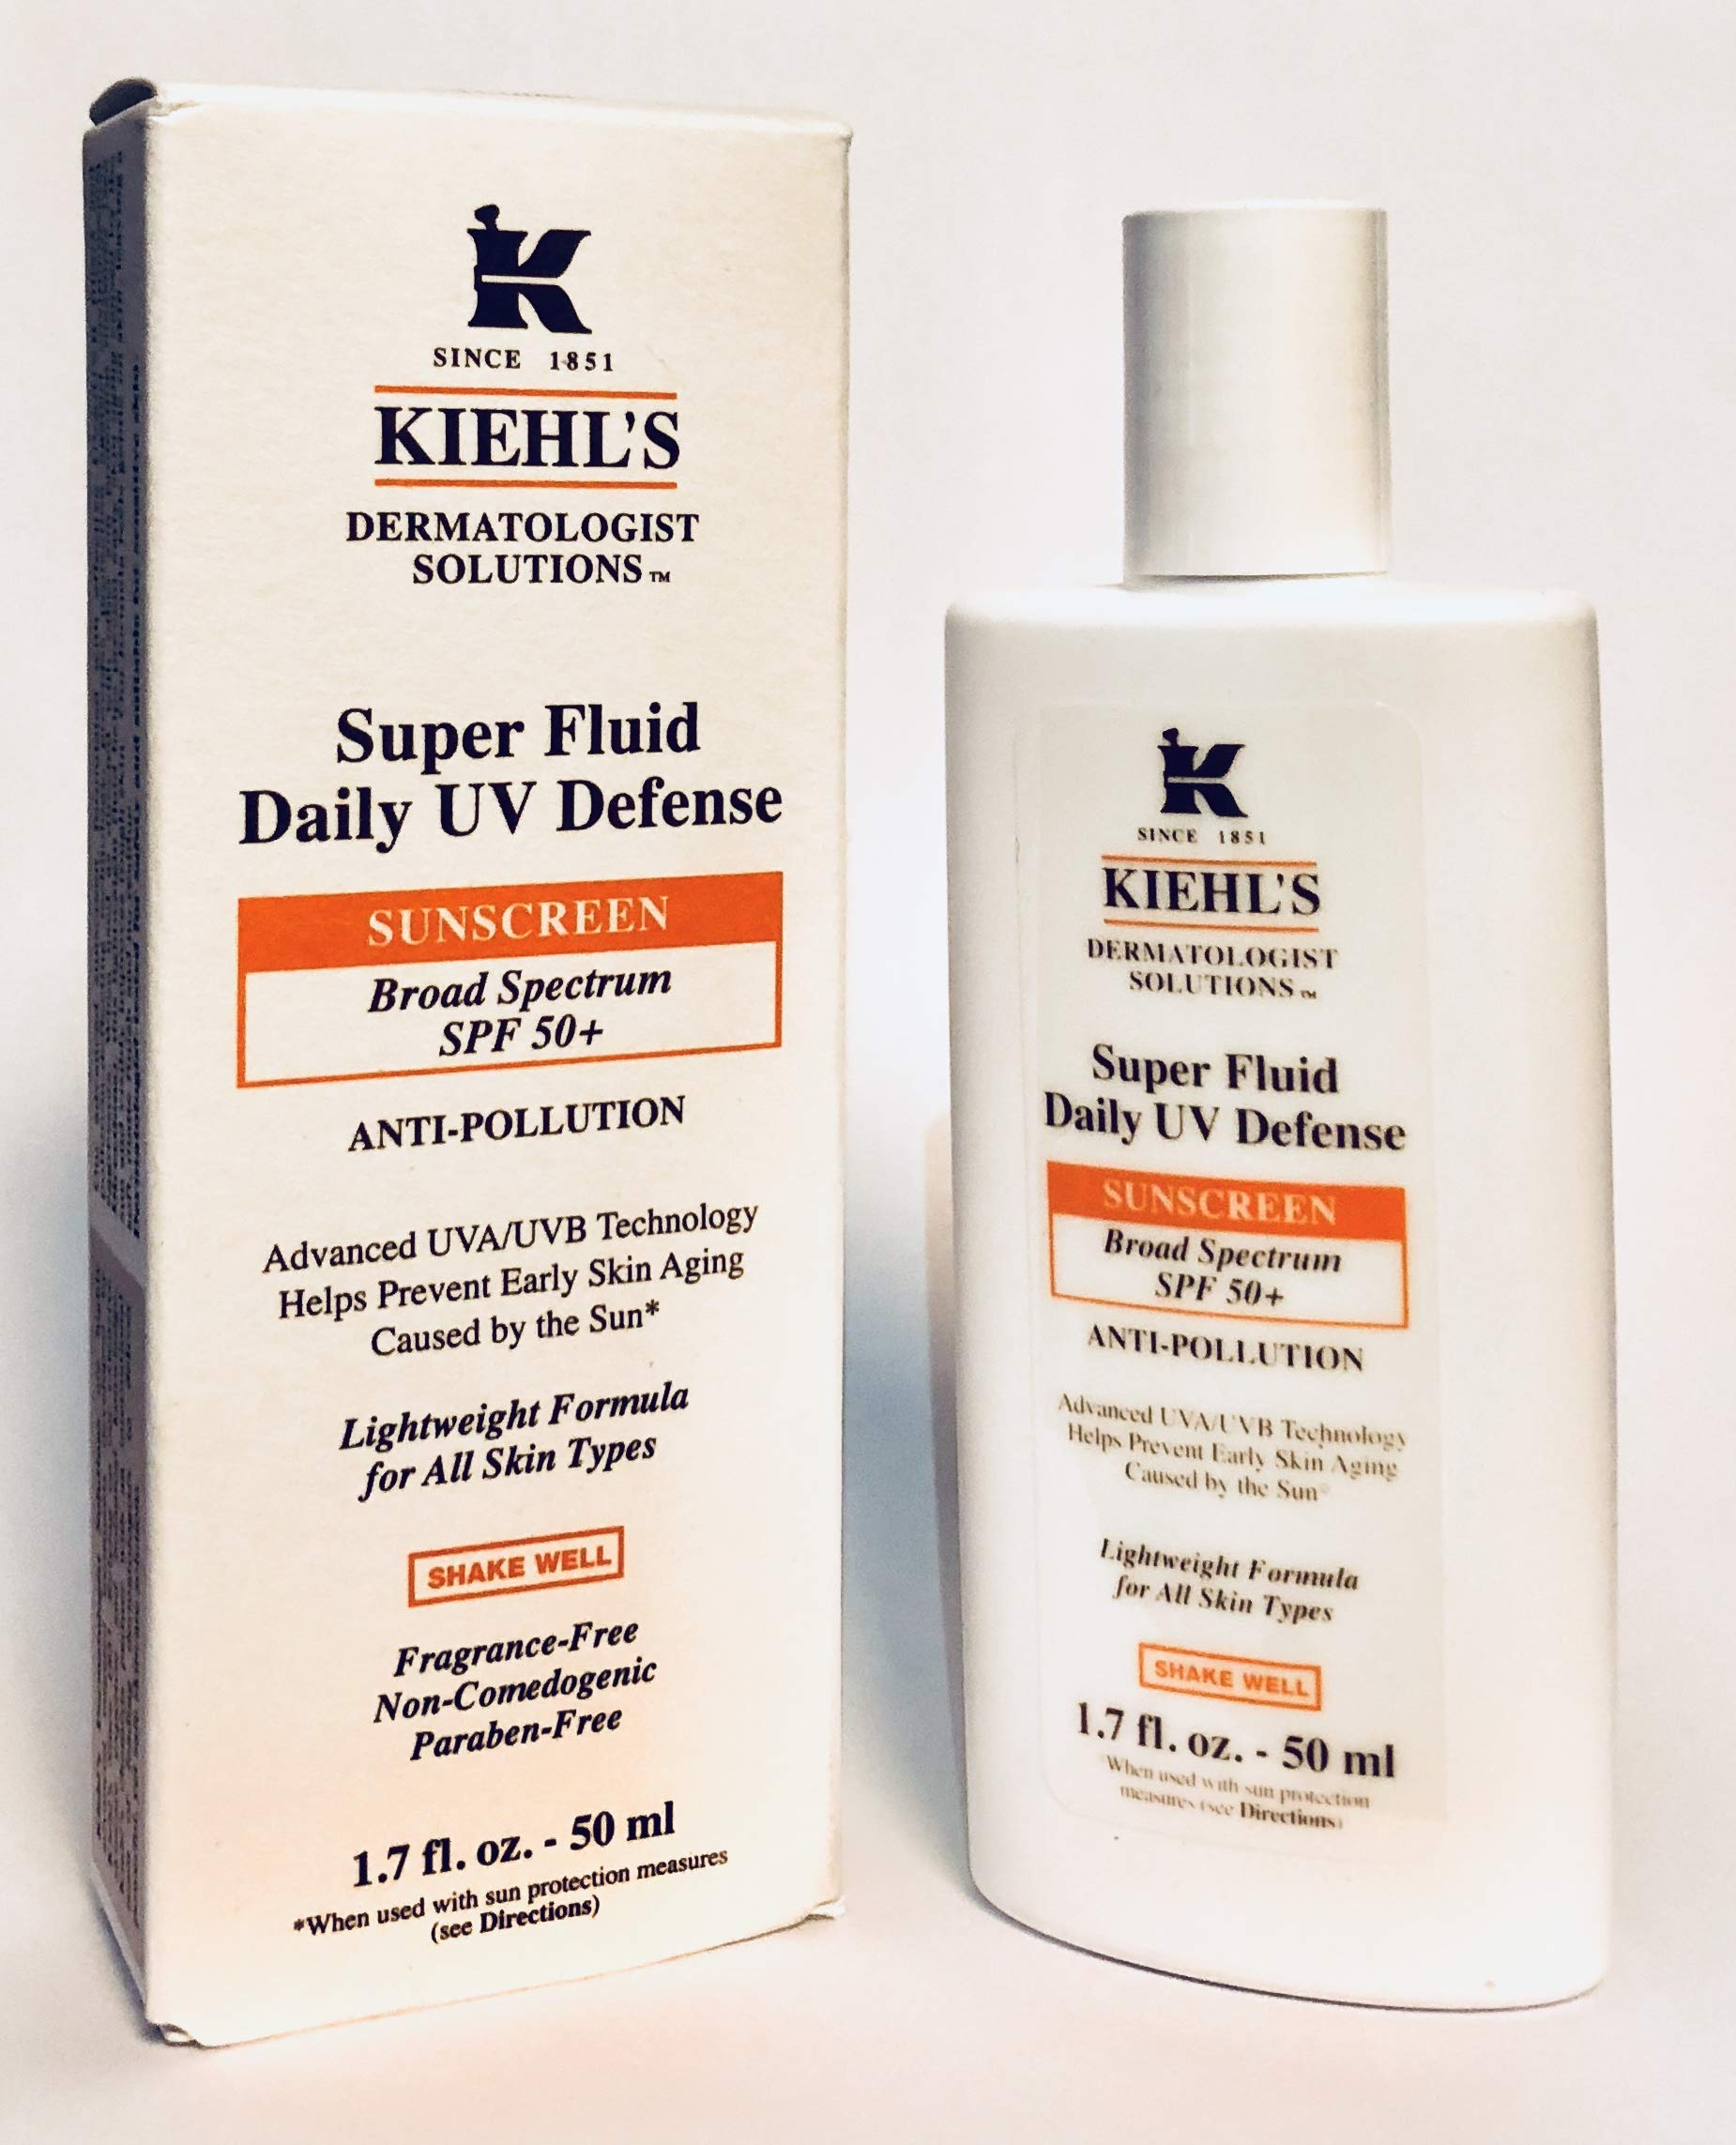 Kiehls Super Fluid UV Defense Sunscreen SPF 50+ 1.7 Oz